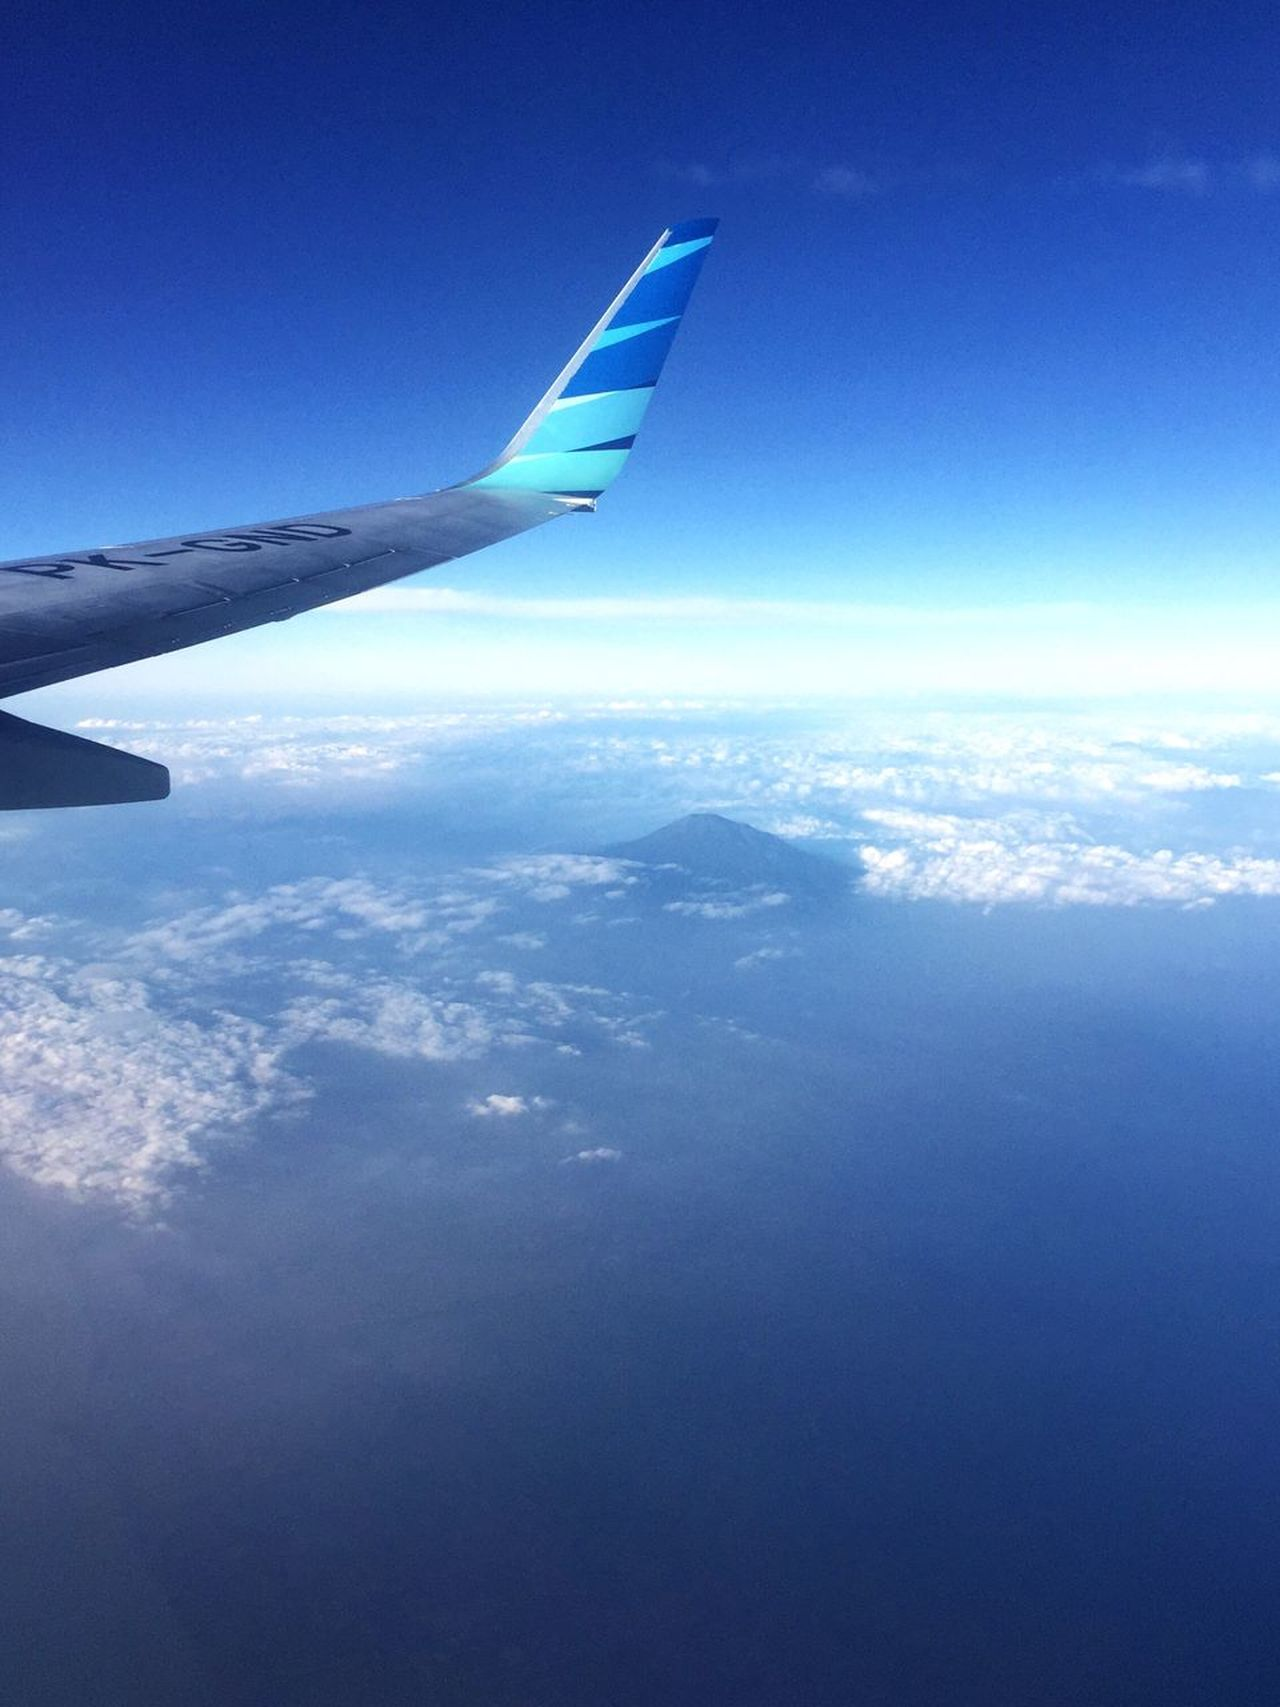 Mount Slamet View From 35.000 ft Airplane Aerial View Blue Airplane Wing Transportation Sky Journey Nature No People Travel Flying Beauty In Nature Cloud - Sky Day Air Vehicle Mid-air Scenics Outdoors Landscape Water EyeEmNewHere Be. Ready.